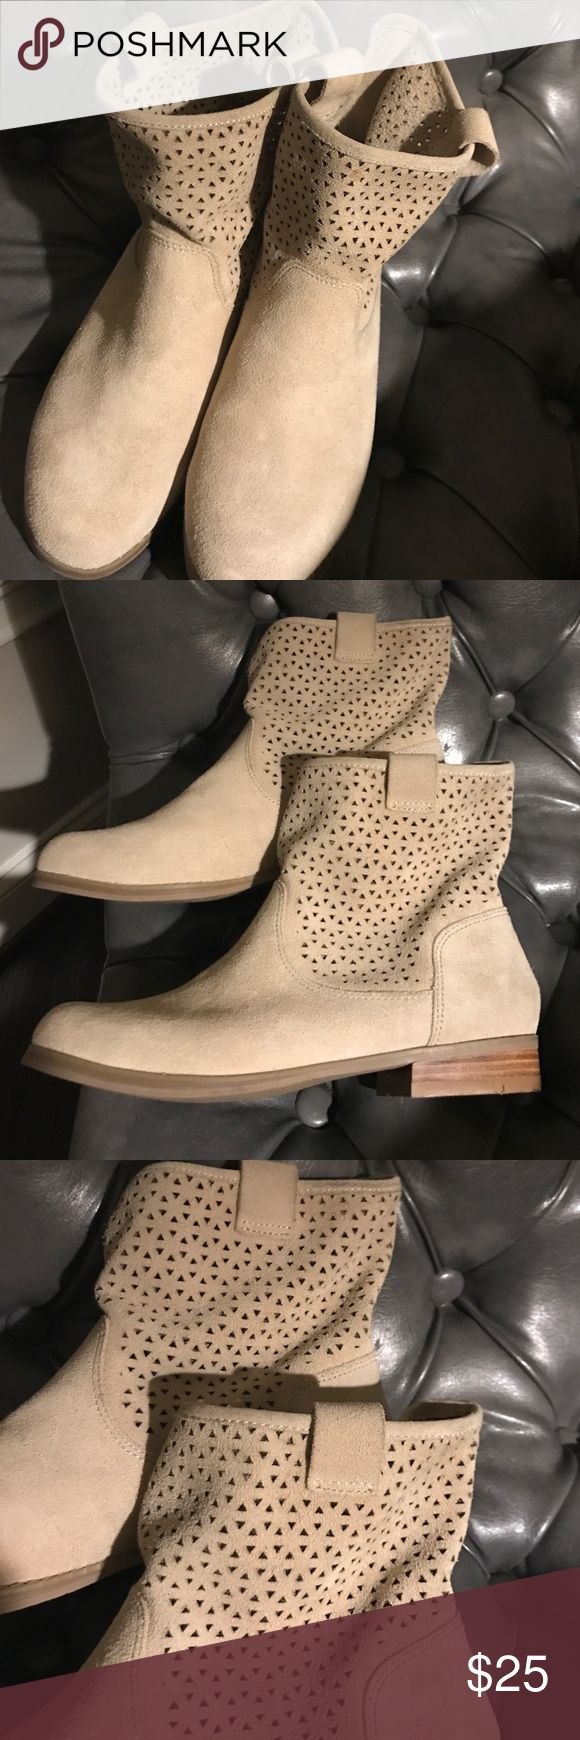 Sole Society, size 8 beige boot Worn once in excellent condition.  Leather Suede upper.  Size 8. Sole Society Shoes Ankle Boots & Booties